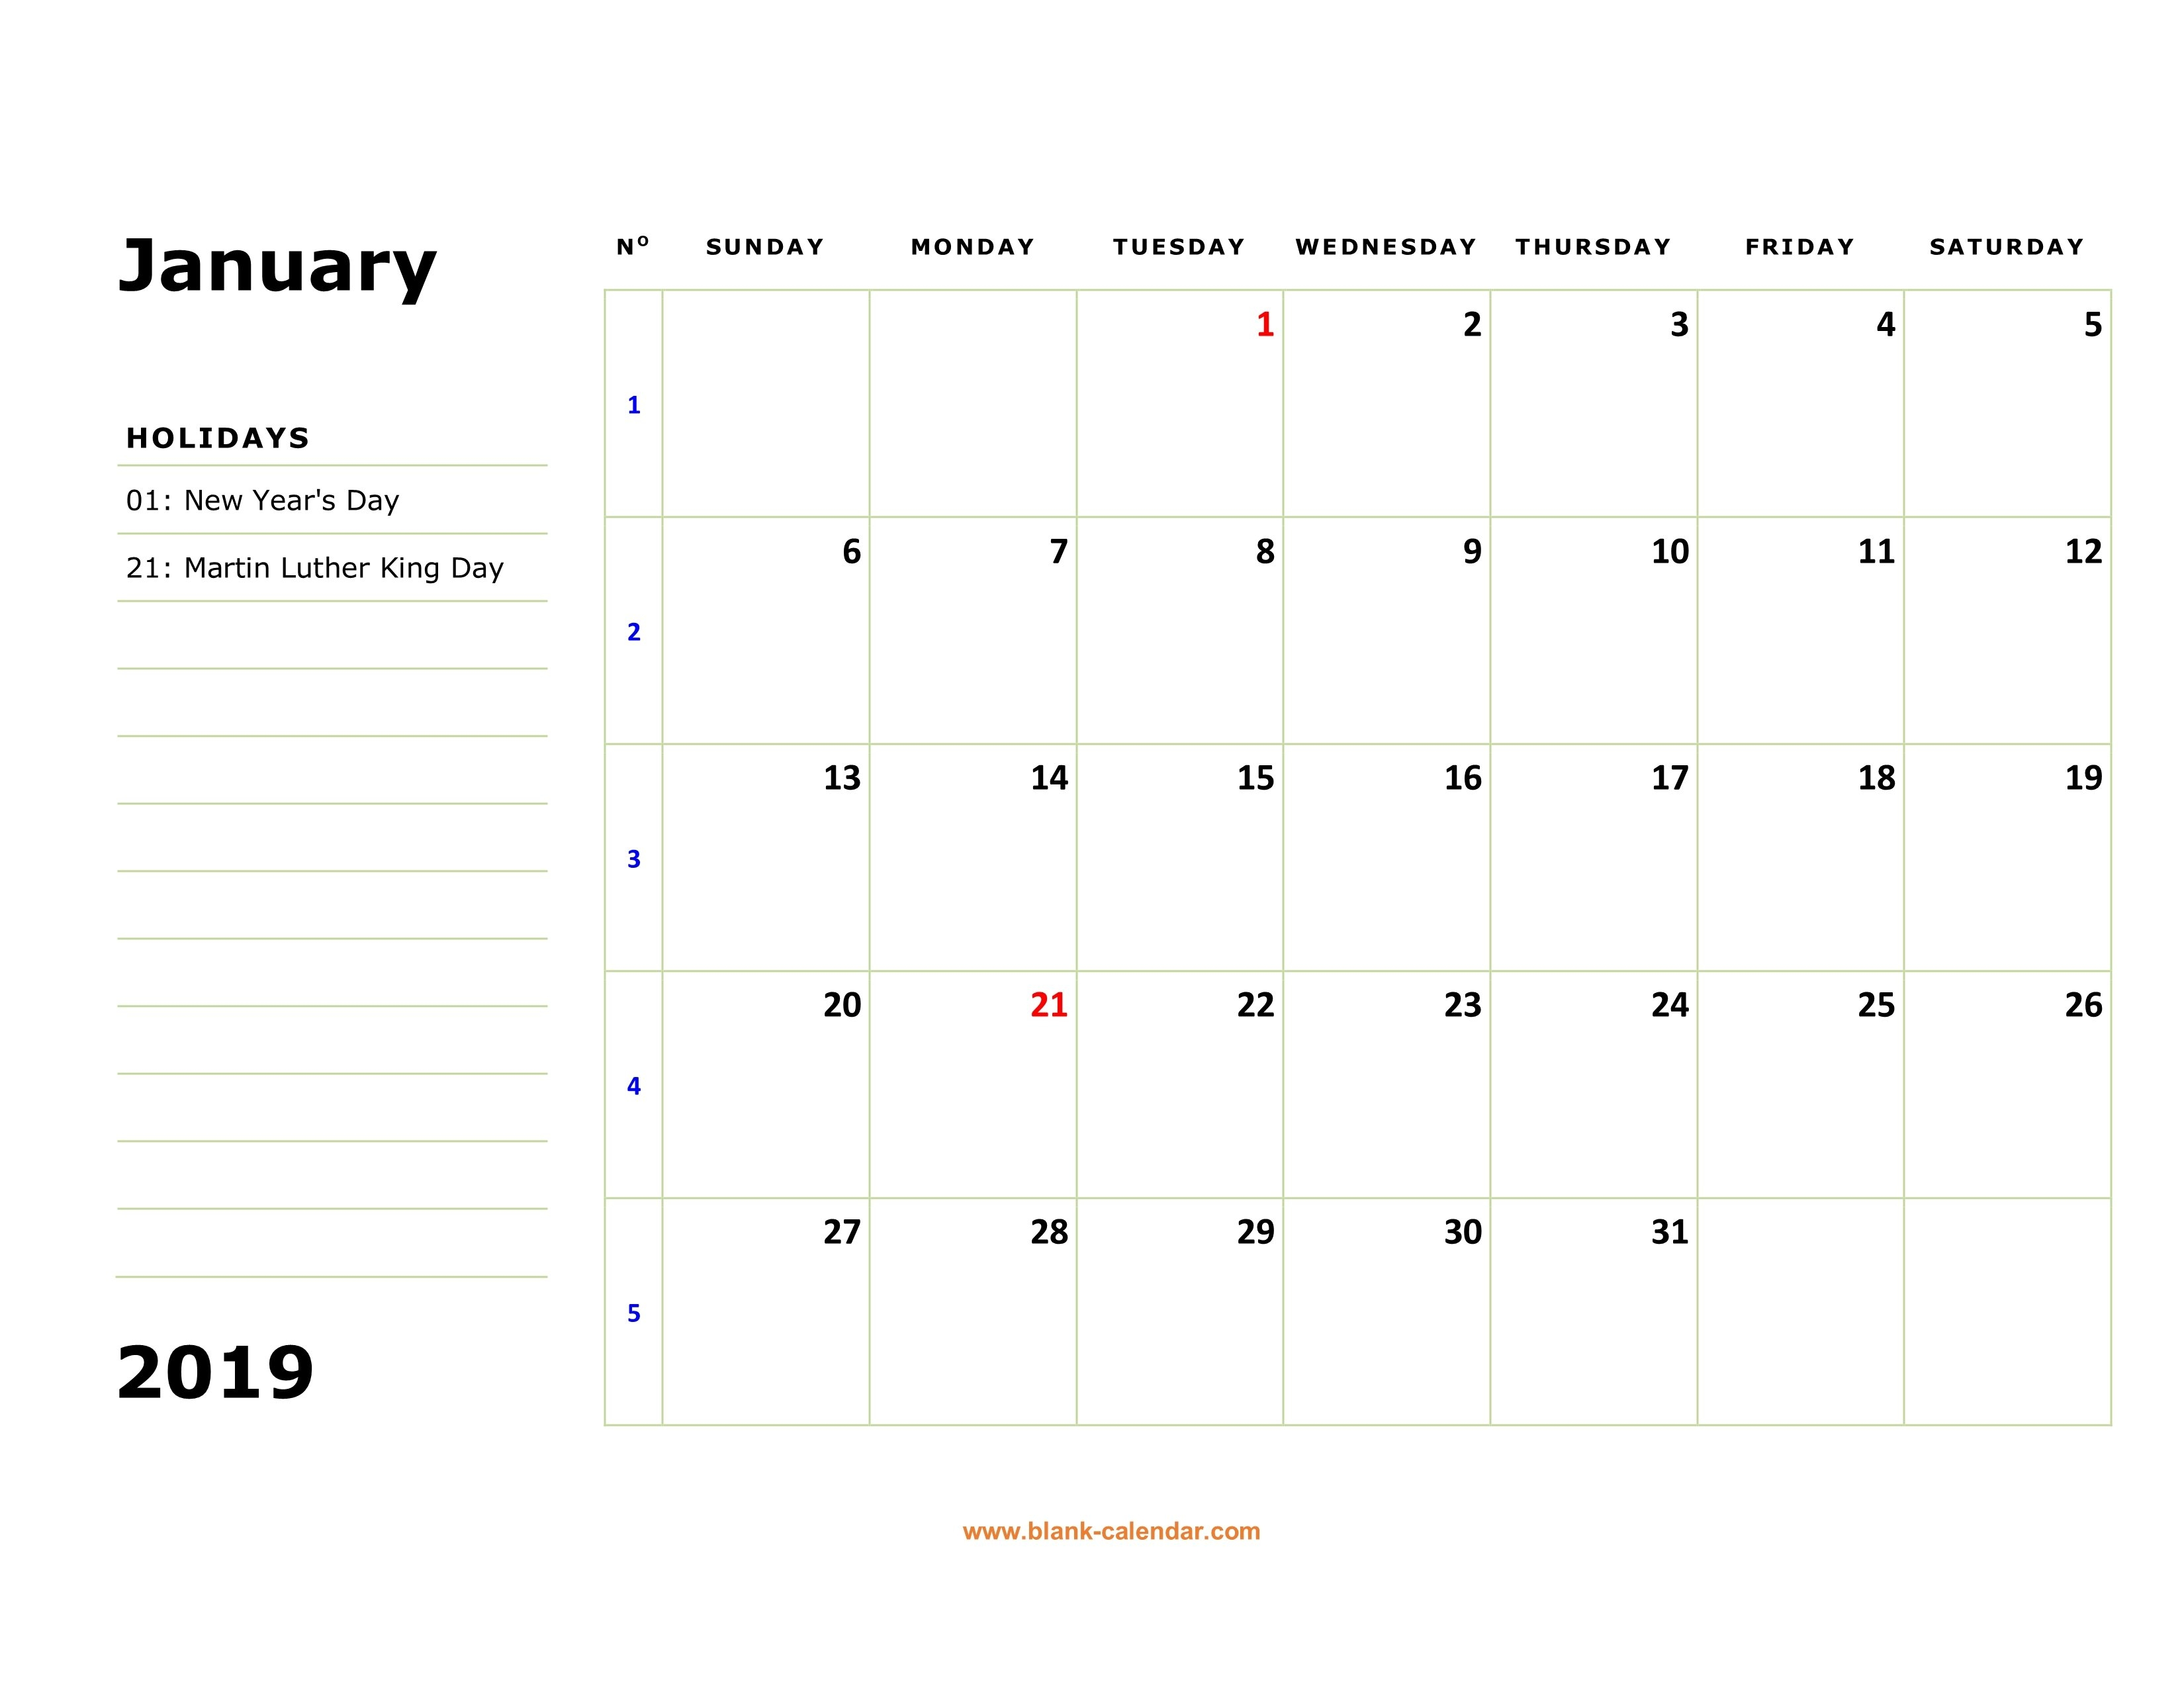 Free Download Printable Calendar 2019, Large Box, Holidays Listed Calendar 2019 Monthly Printable With Holidays